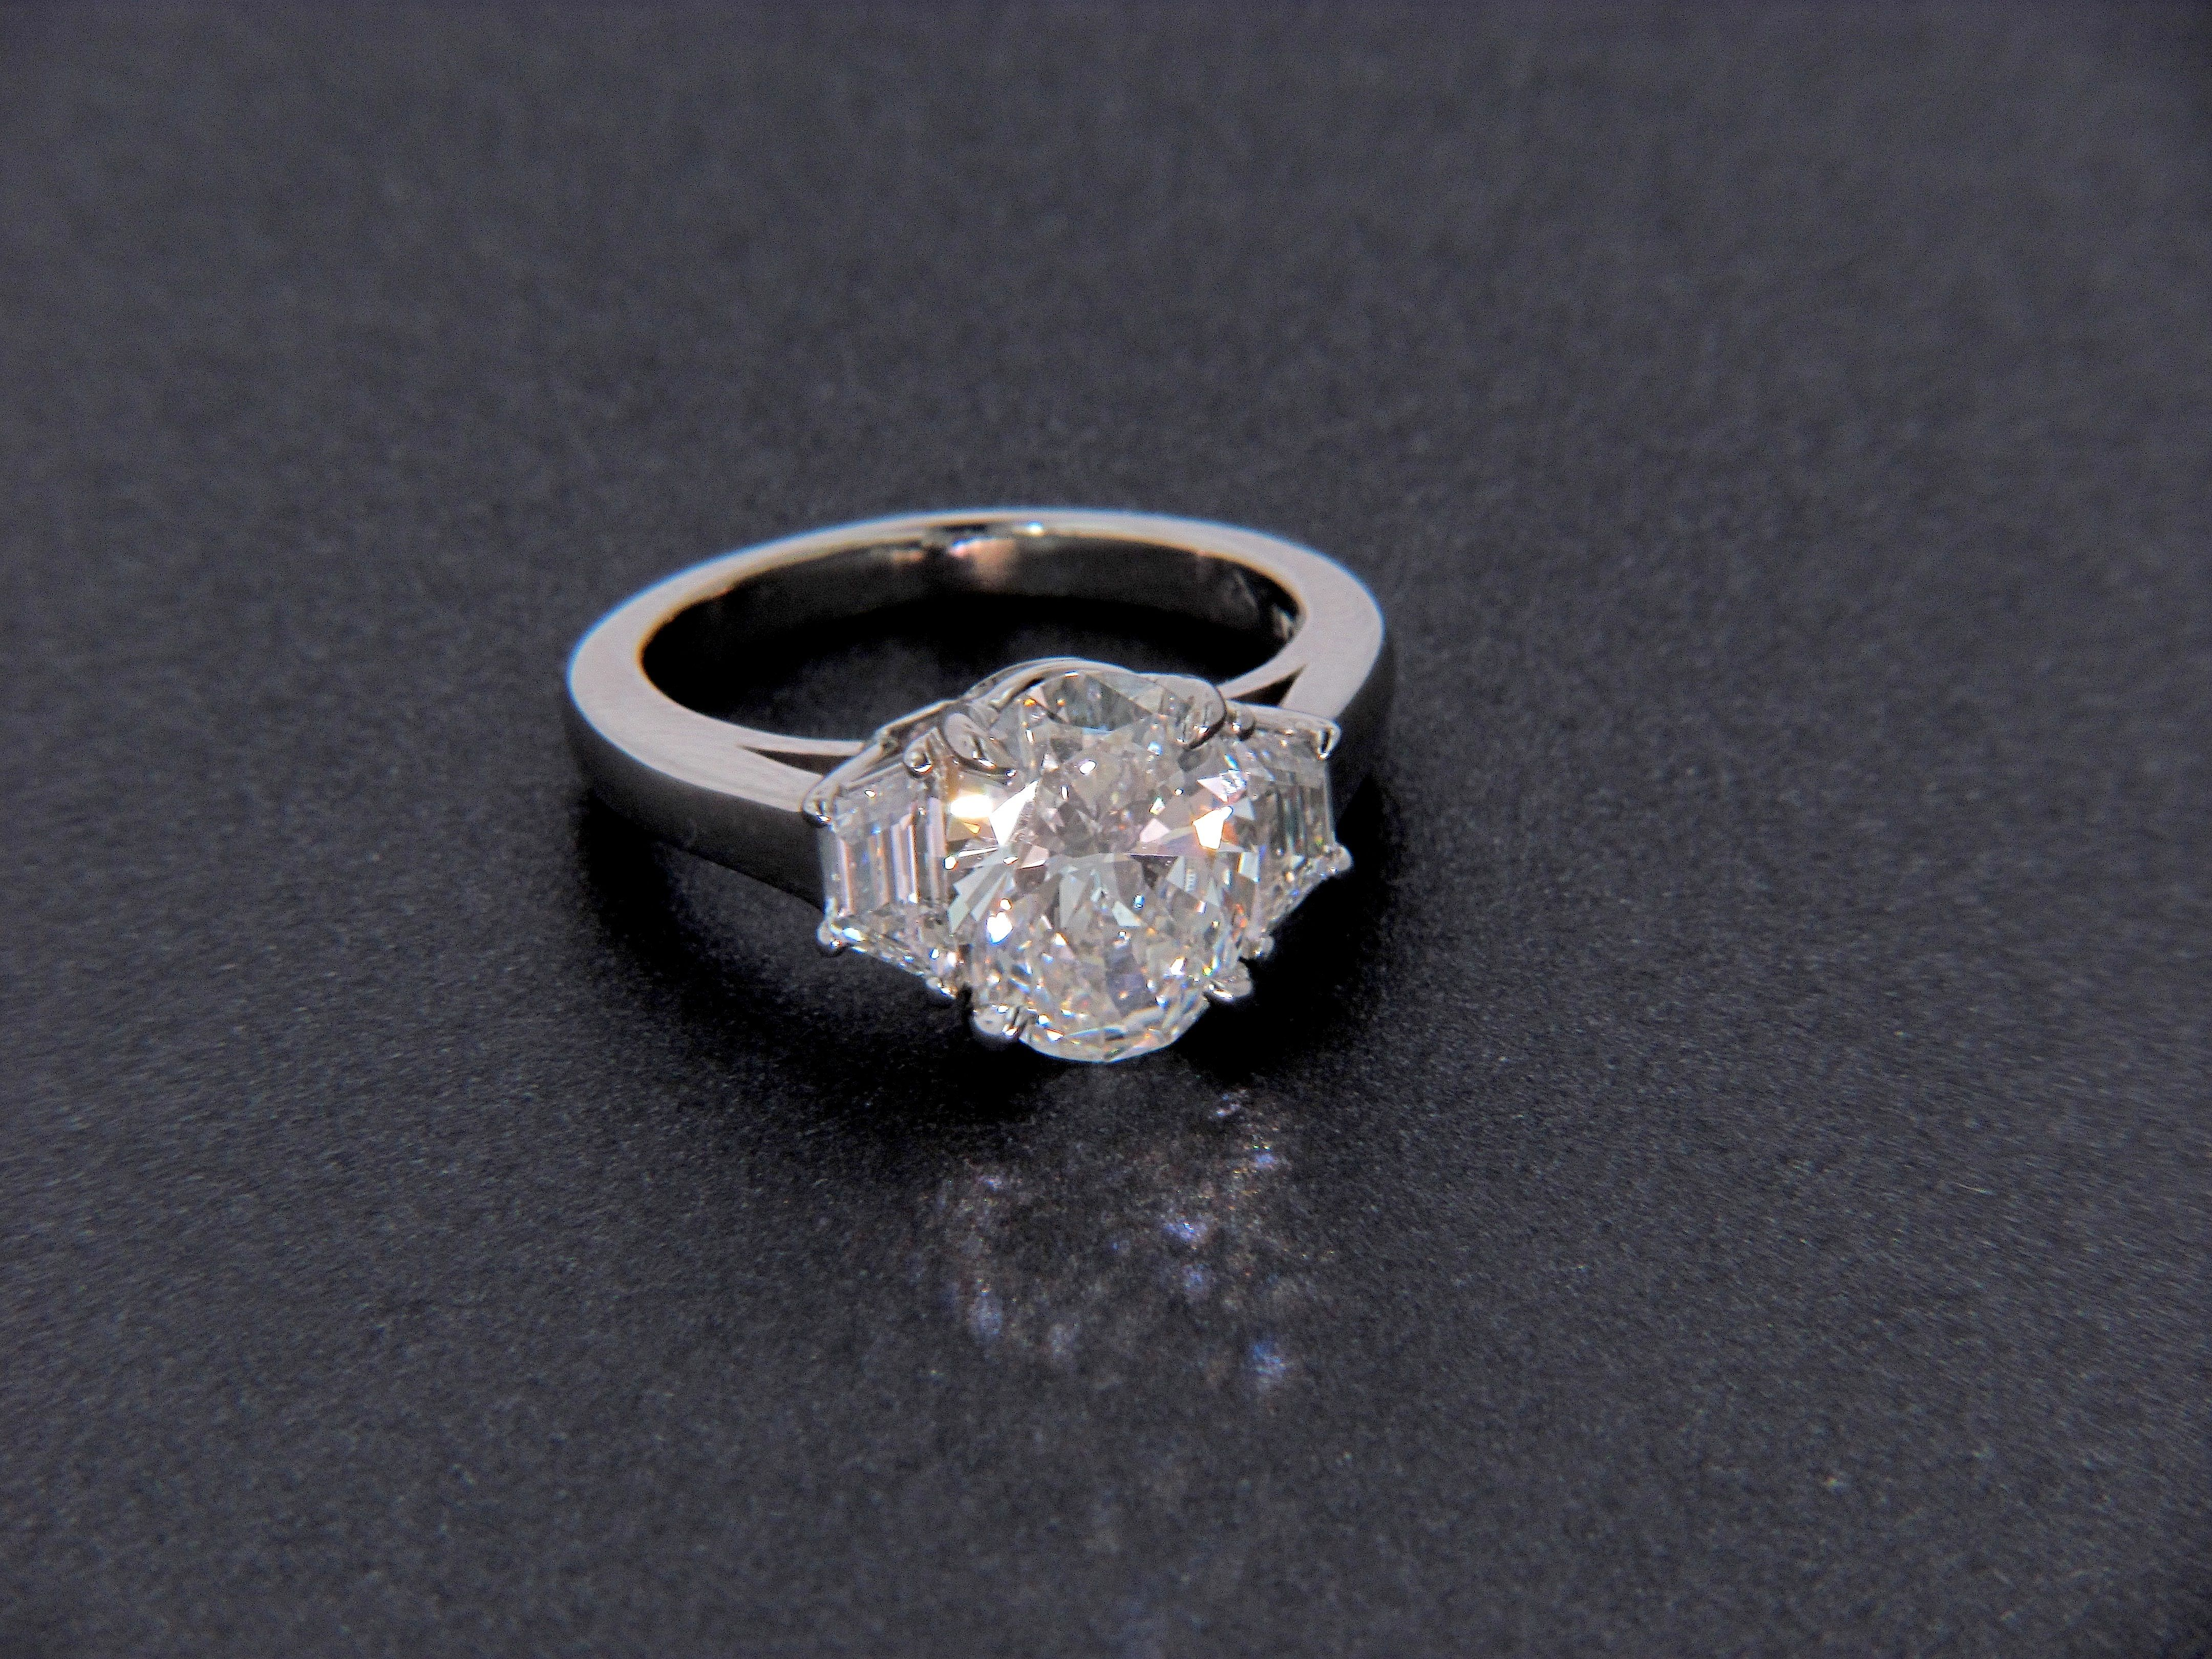 d508f74c4c217 Oval Diamond ring with Trapezoid Side Stones - not a fan of the ...